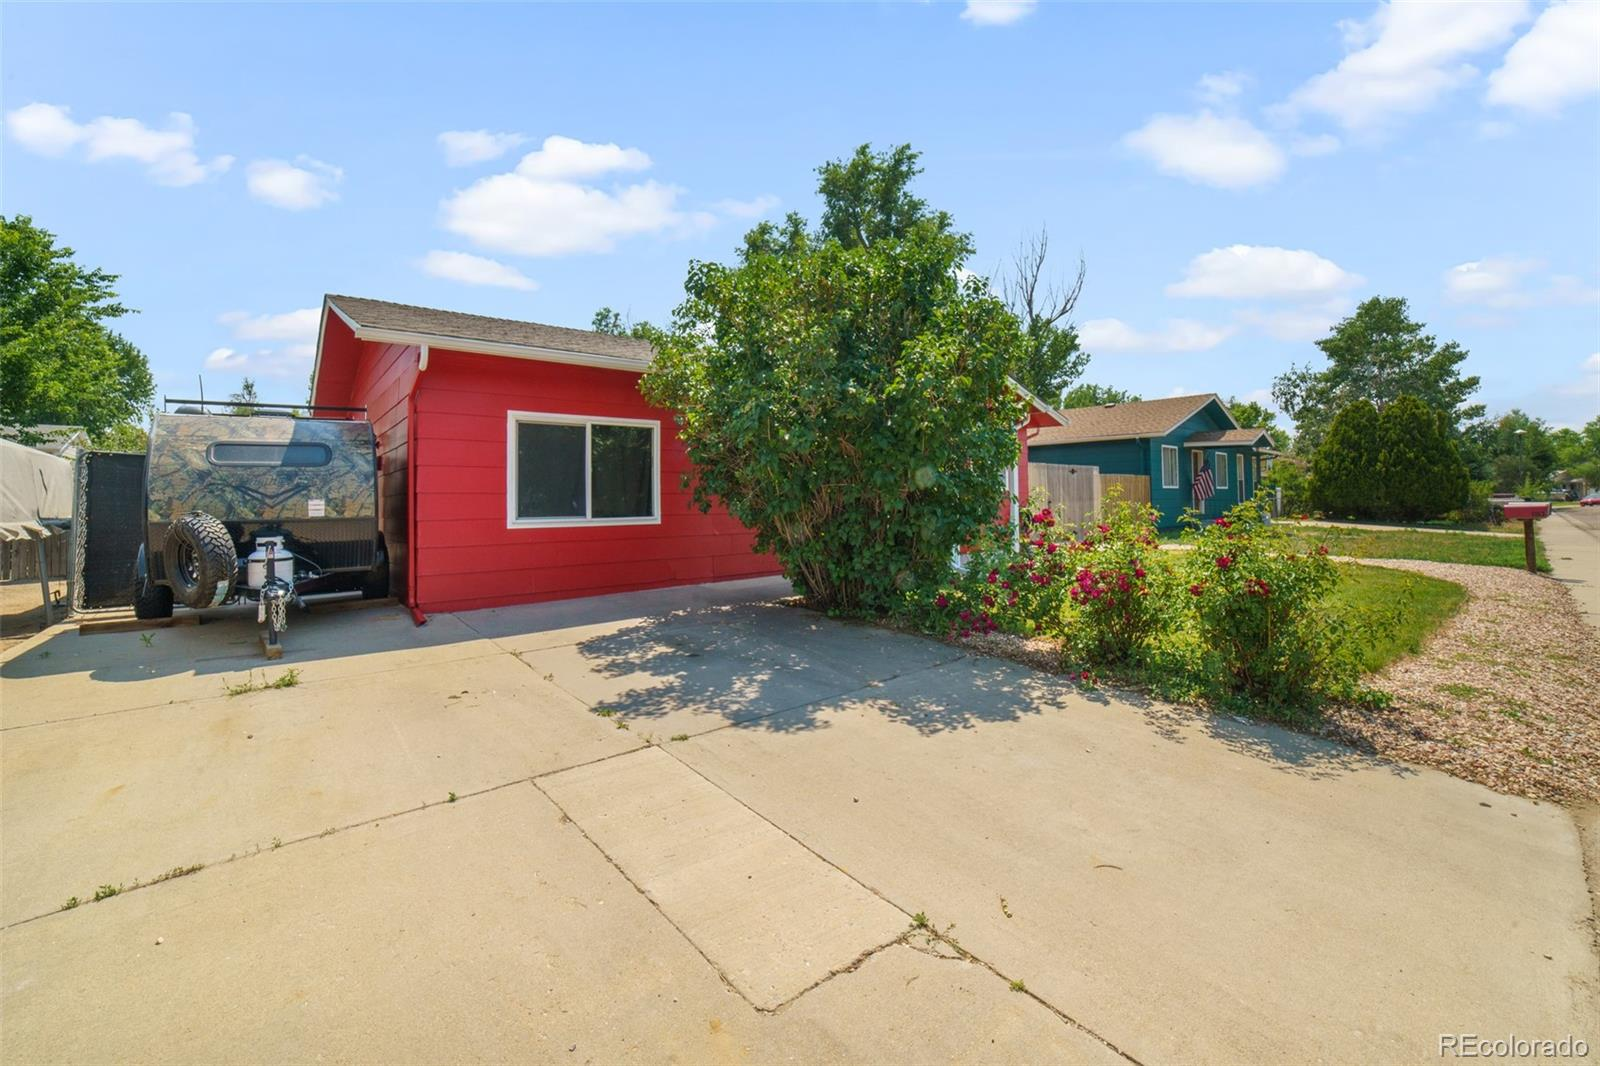 MLS# 7364059 - 2 - 1114 Pacific Way, Fort Lupton, CO 80621